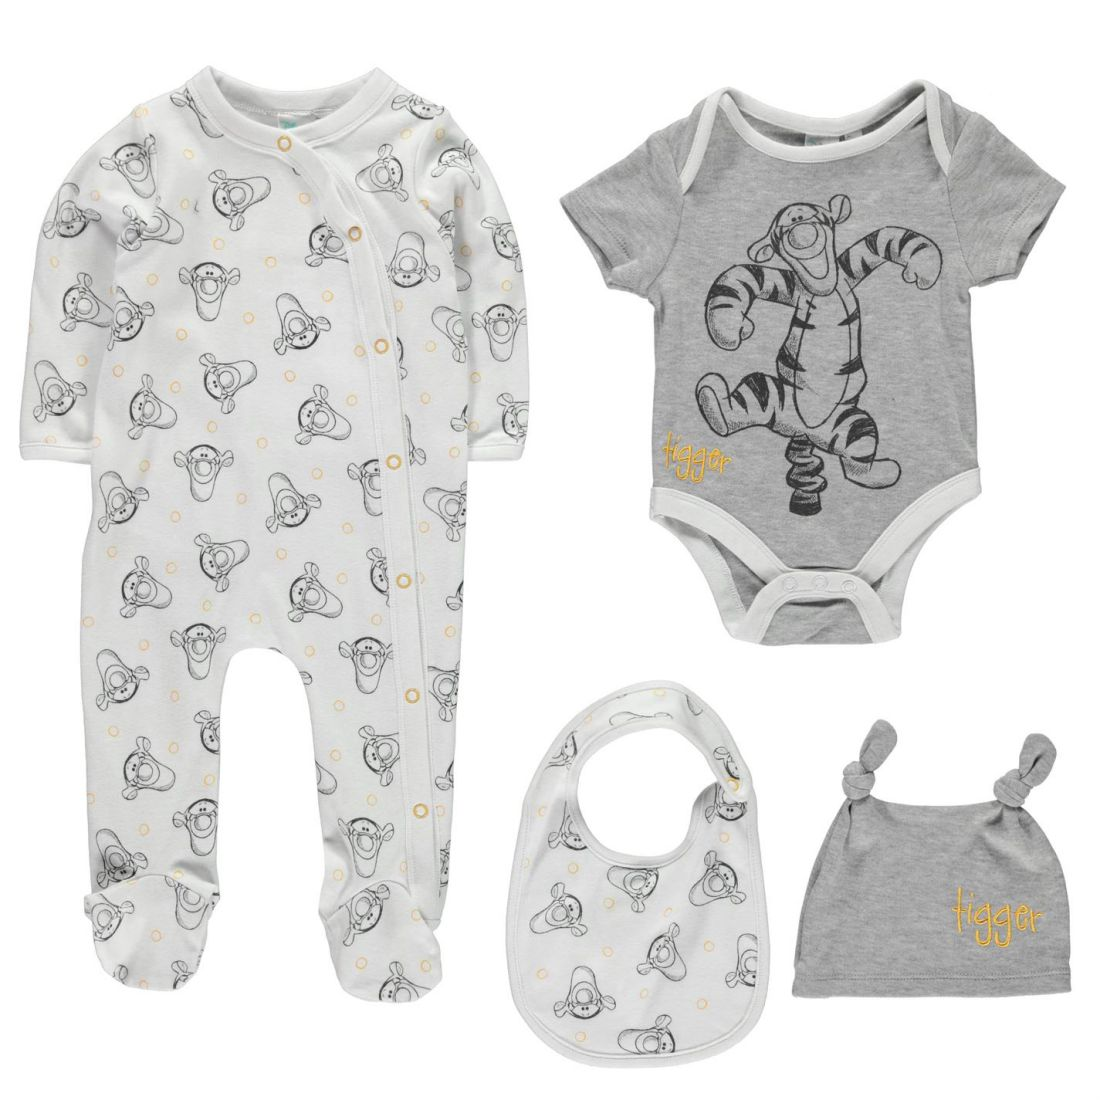 a4fe5402bda3 Disney 4 Piece Romper Set Babies Childrens Rompers Sleep Suit Short ...